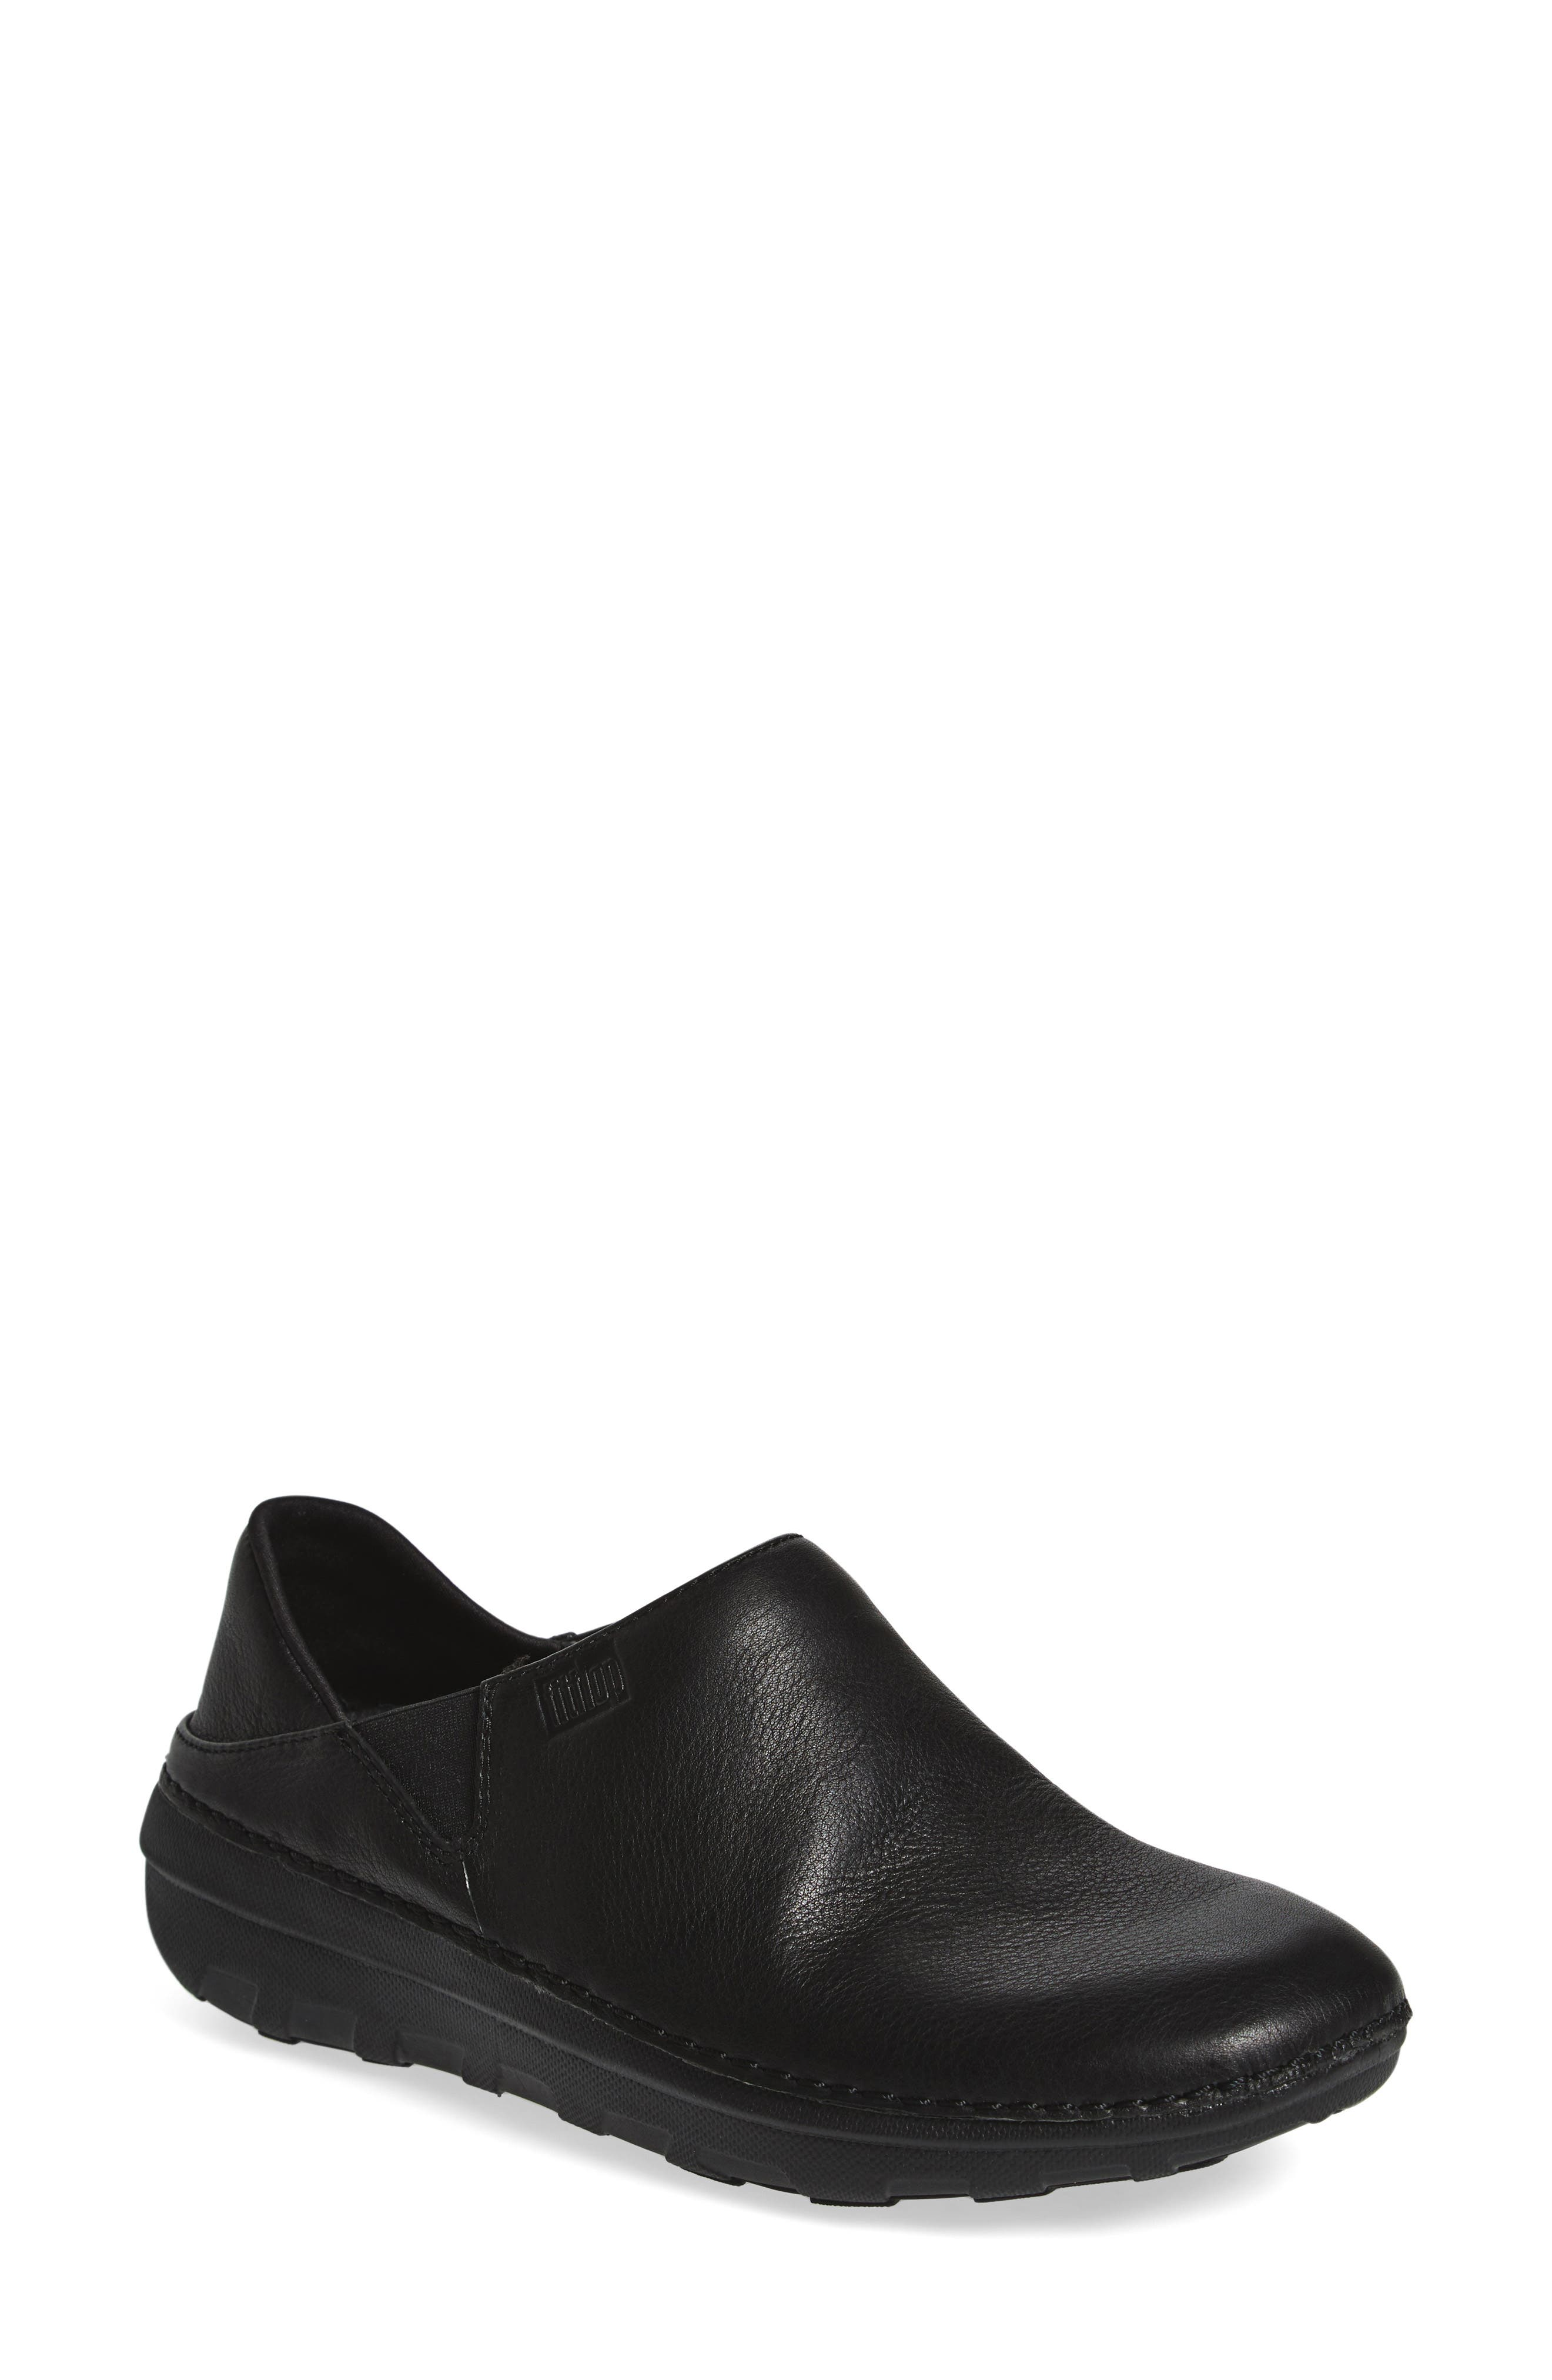 Superloafer Flat,                             Main thumbnail 1, color,                             ALL BLACK LEATHER